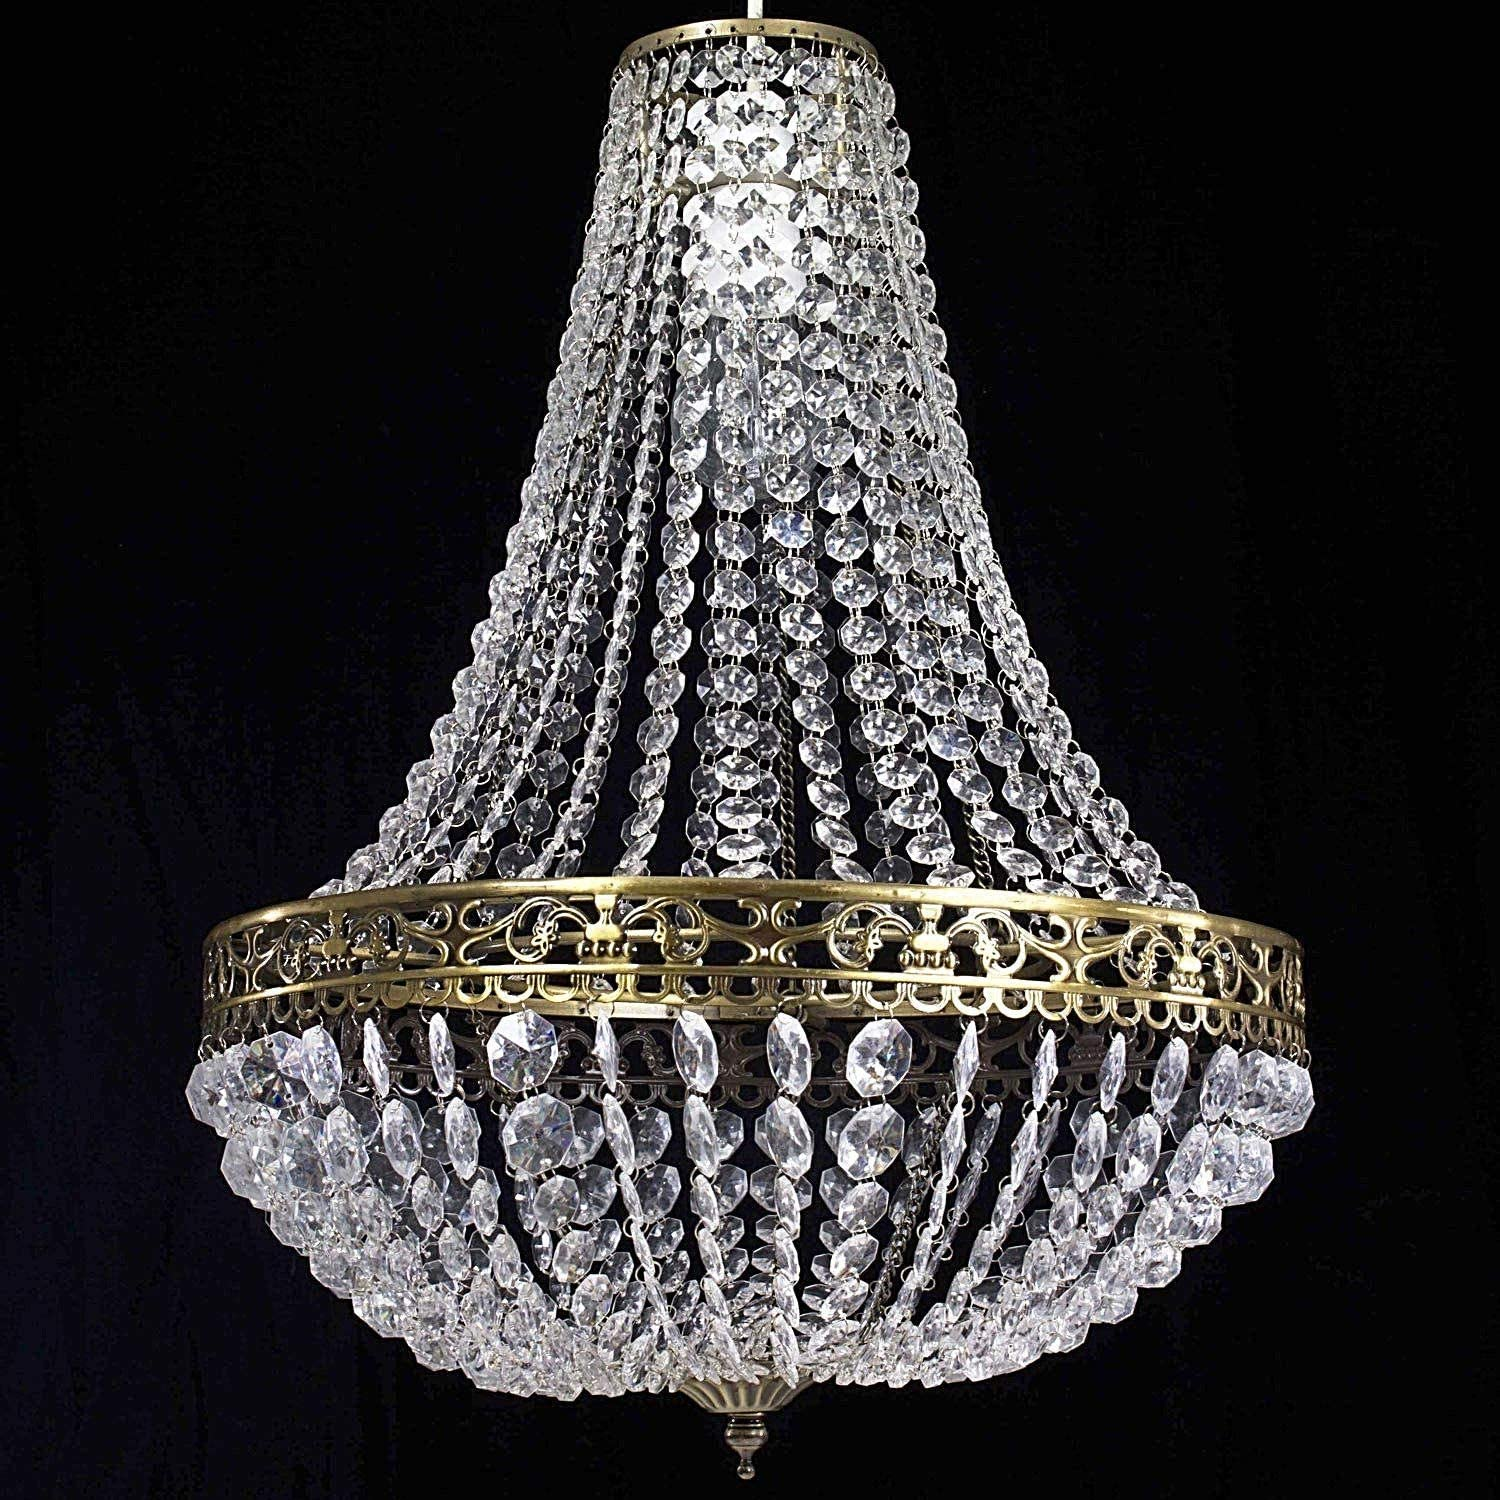 Klass Home Acrylic Chandelier Classic Vintage Chic Ceiling Light Shade Crystal Drop Light Easy Fitting Pendant Lampshade with ChromeBrass Finish